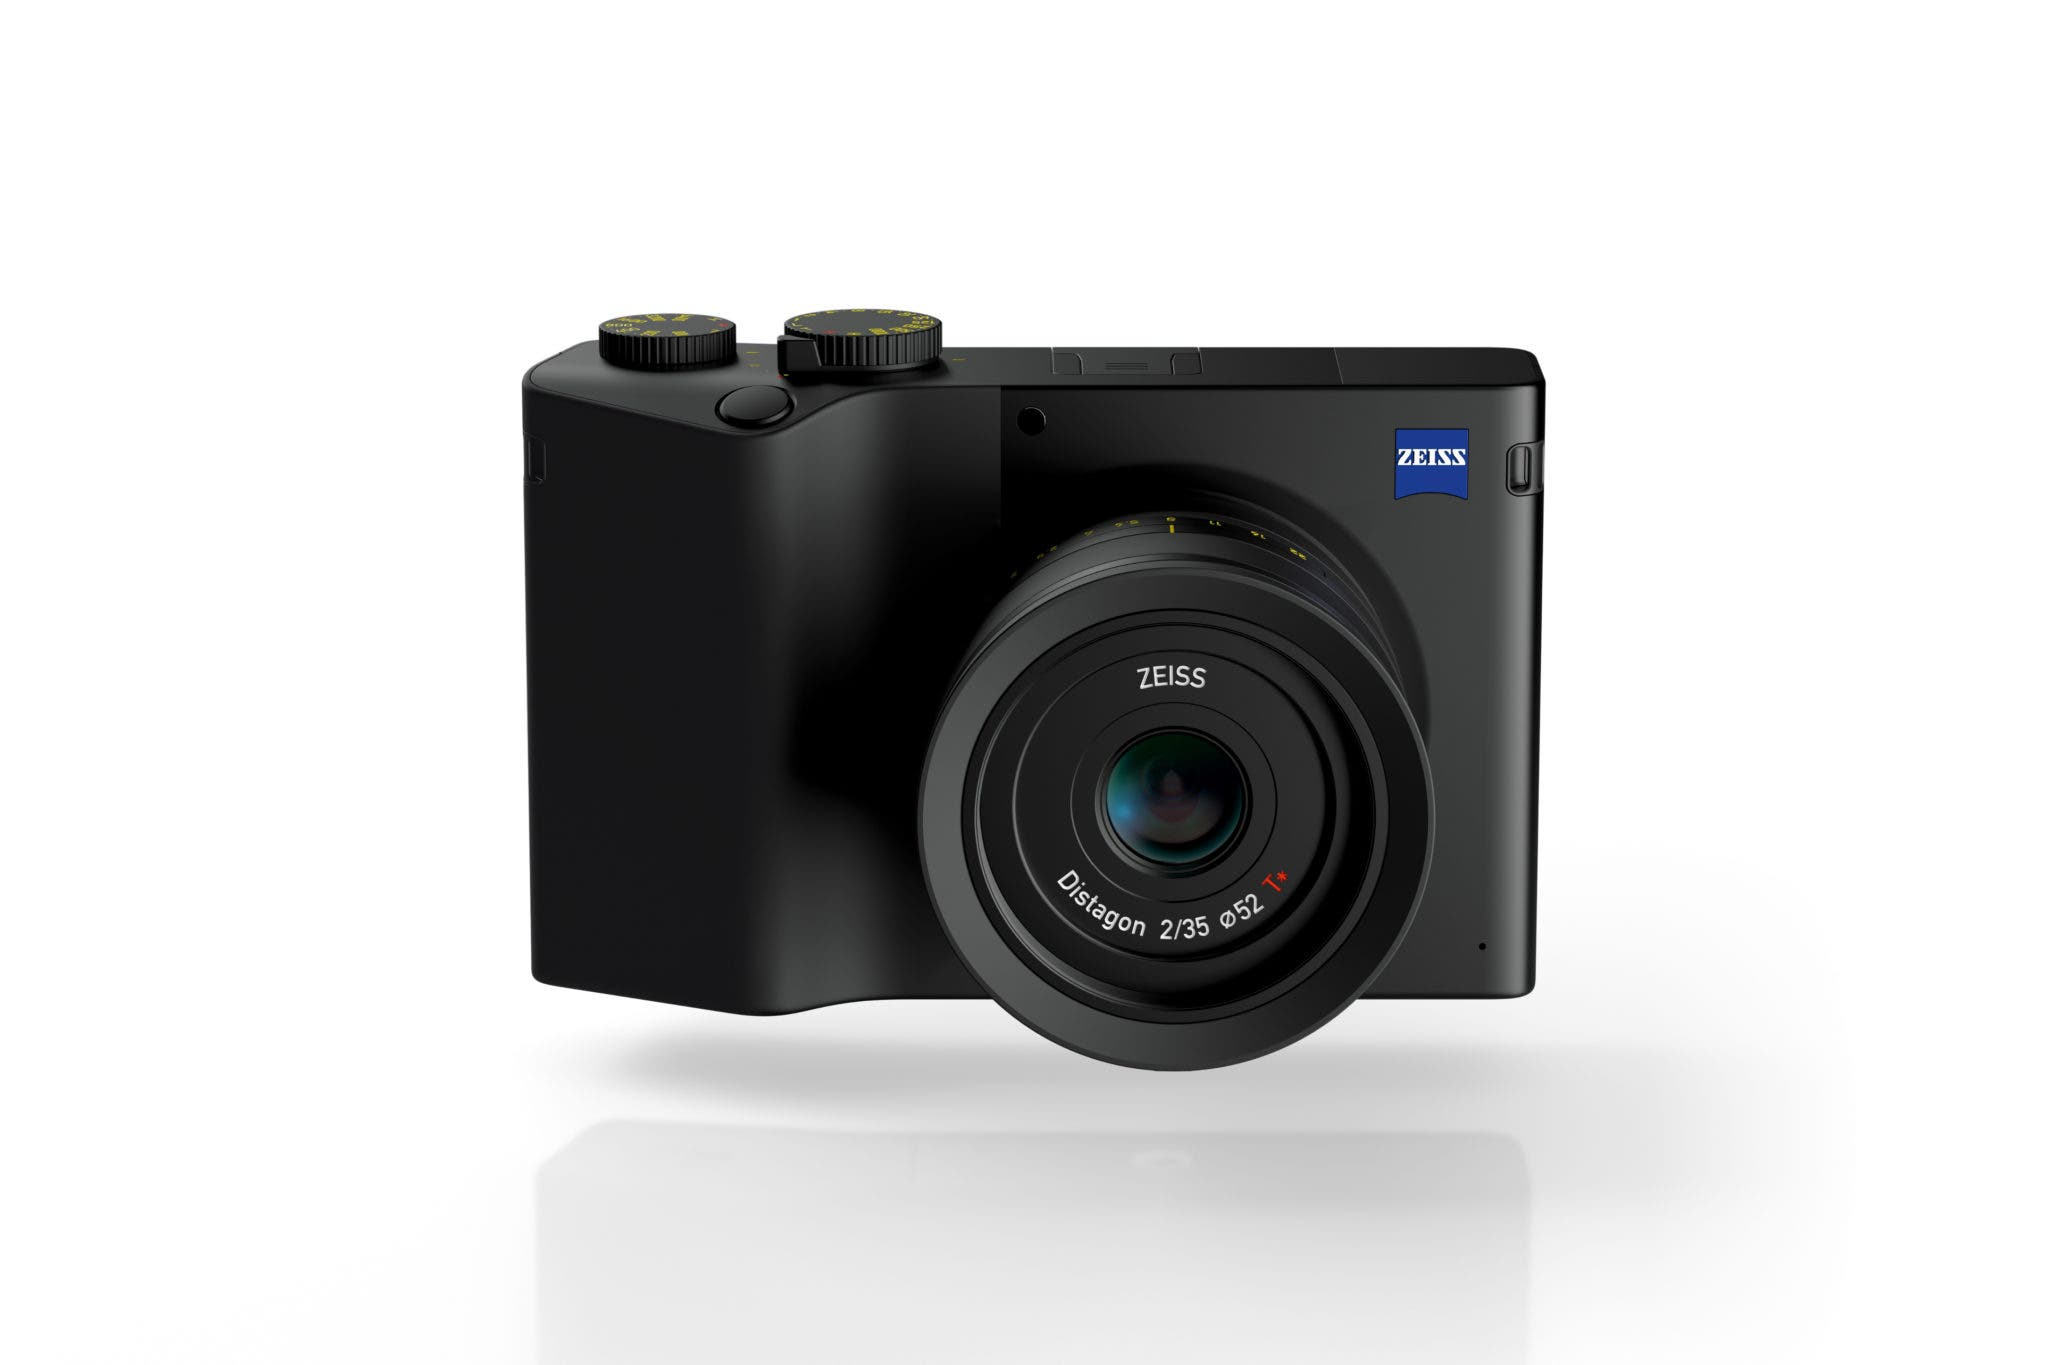 ZEISS Announces Newly Developed ZX1 Full Frame Mirrorless Camera